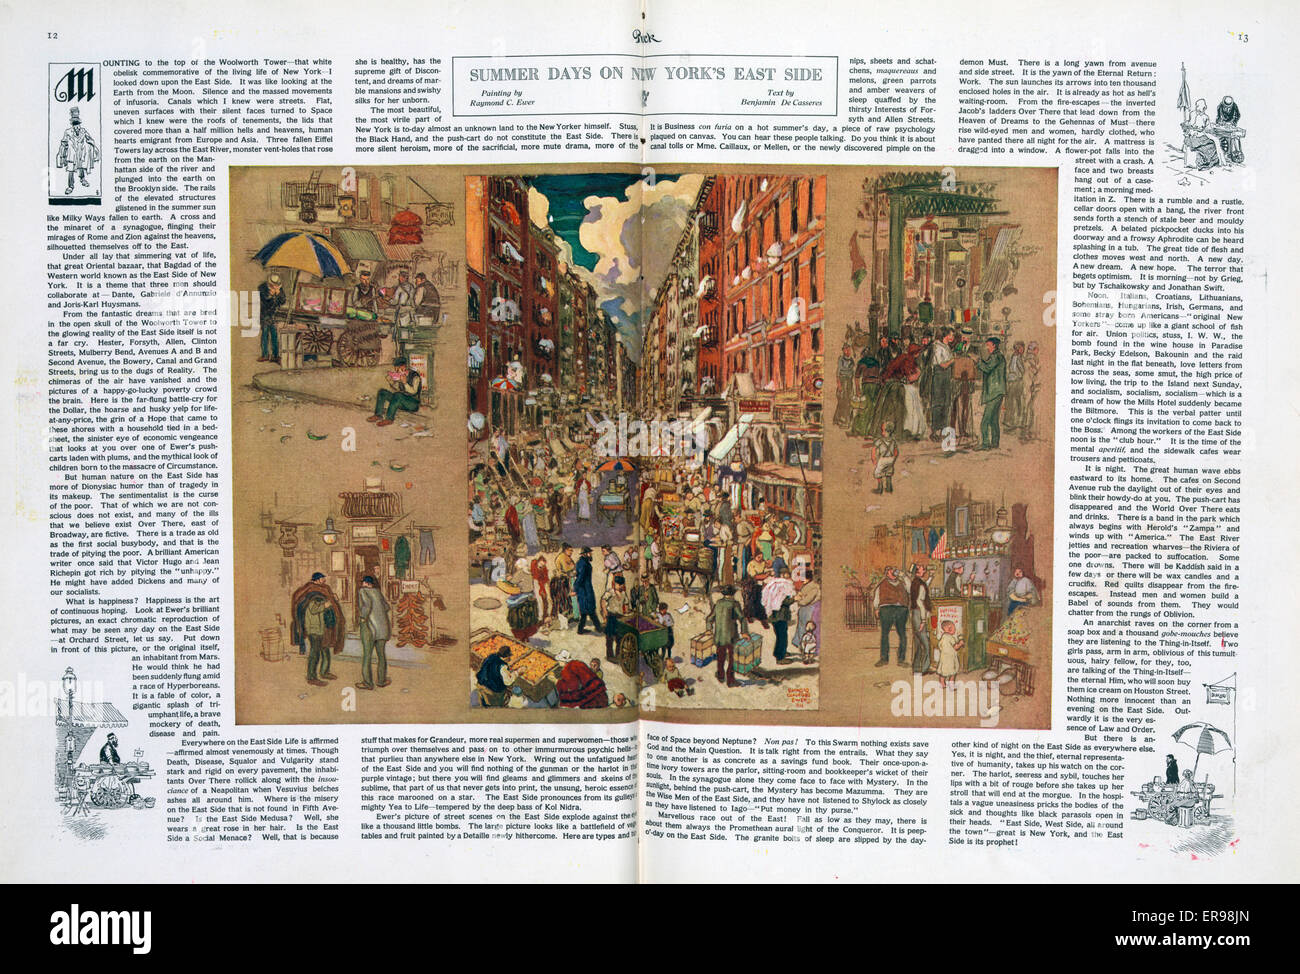 Summer days on New York's east side. Illustration shows a crowded street between tenement buildings, with street - Stock Image